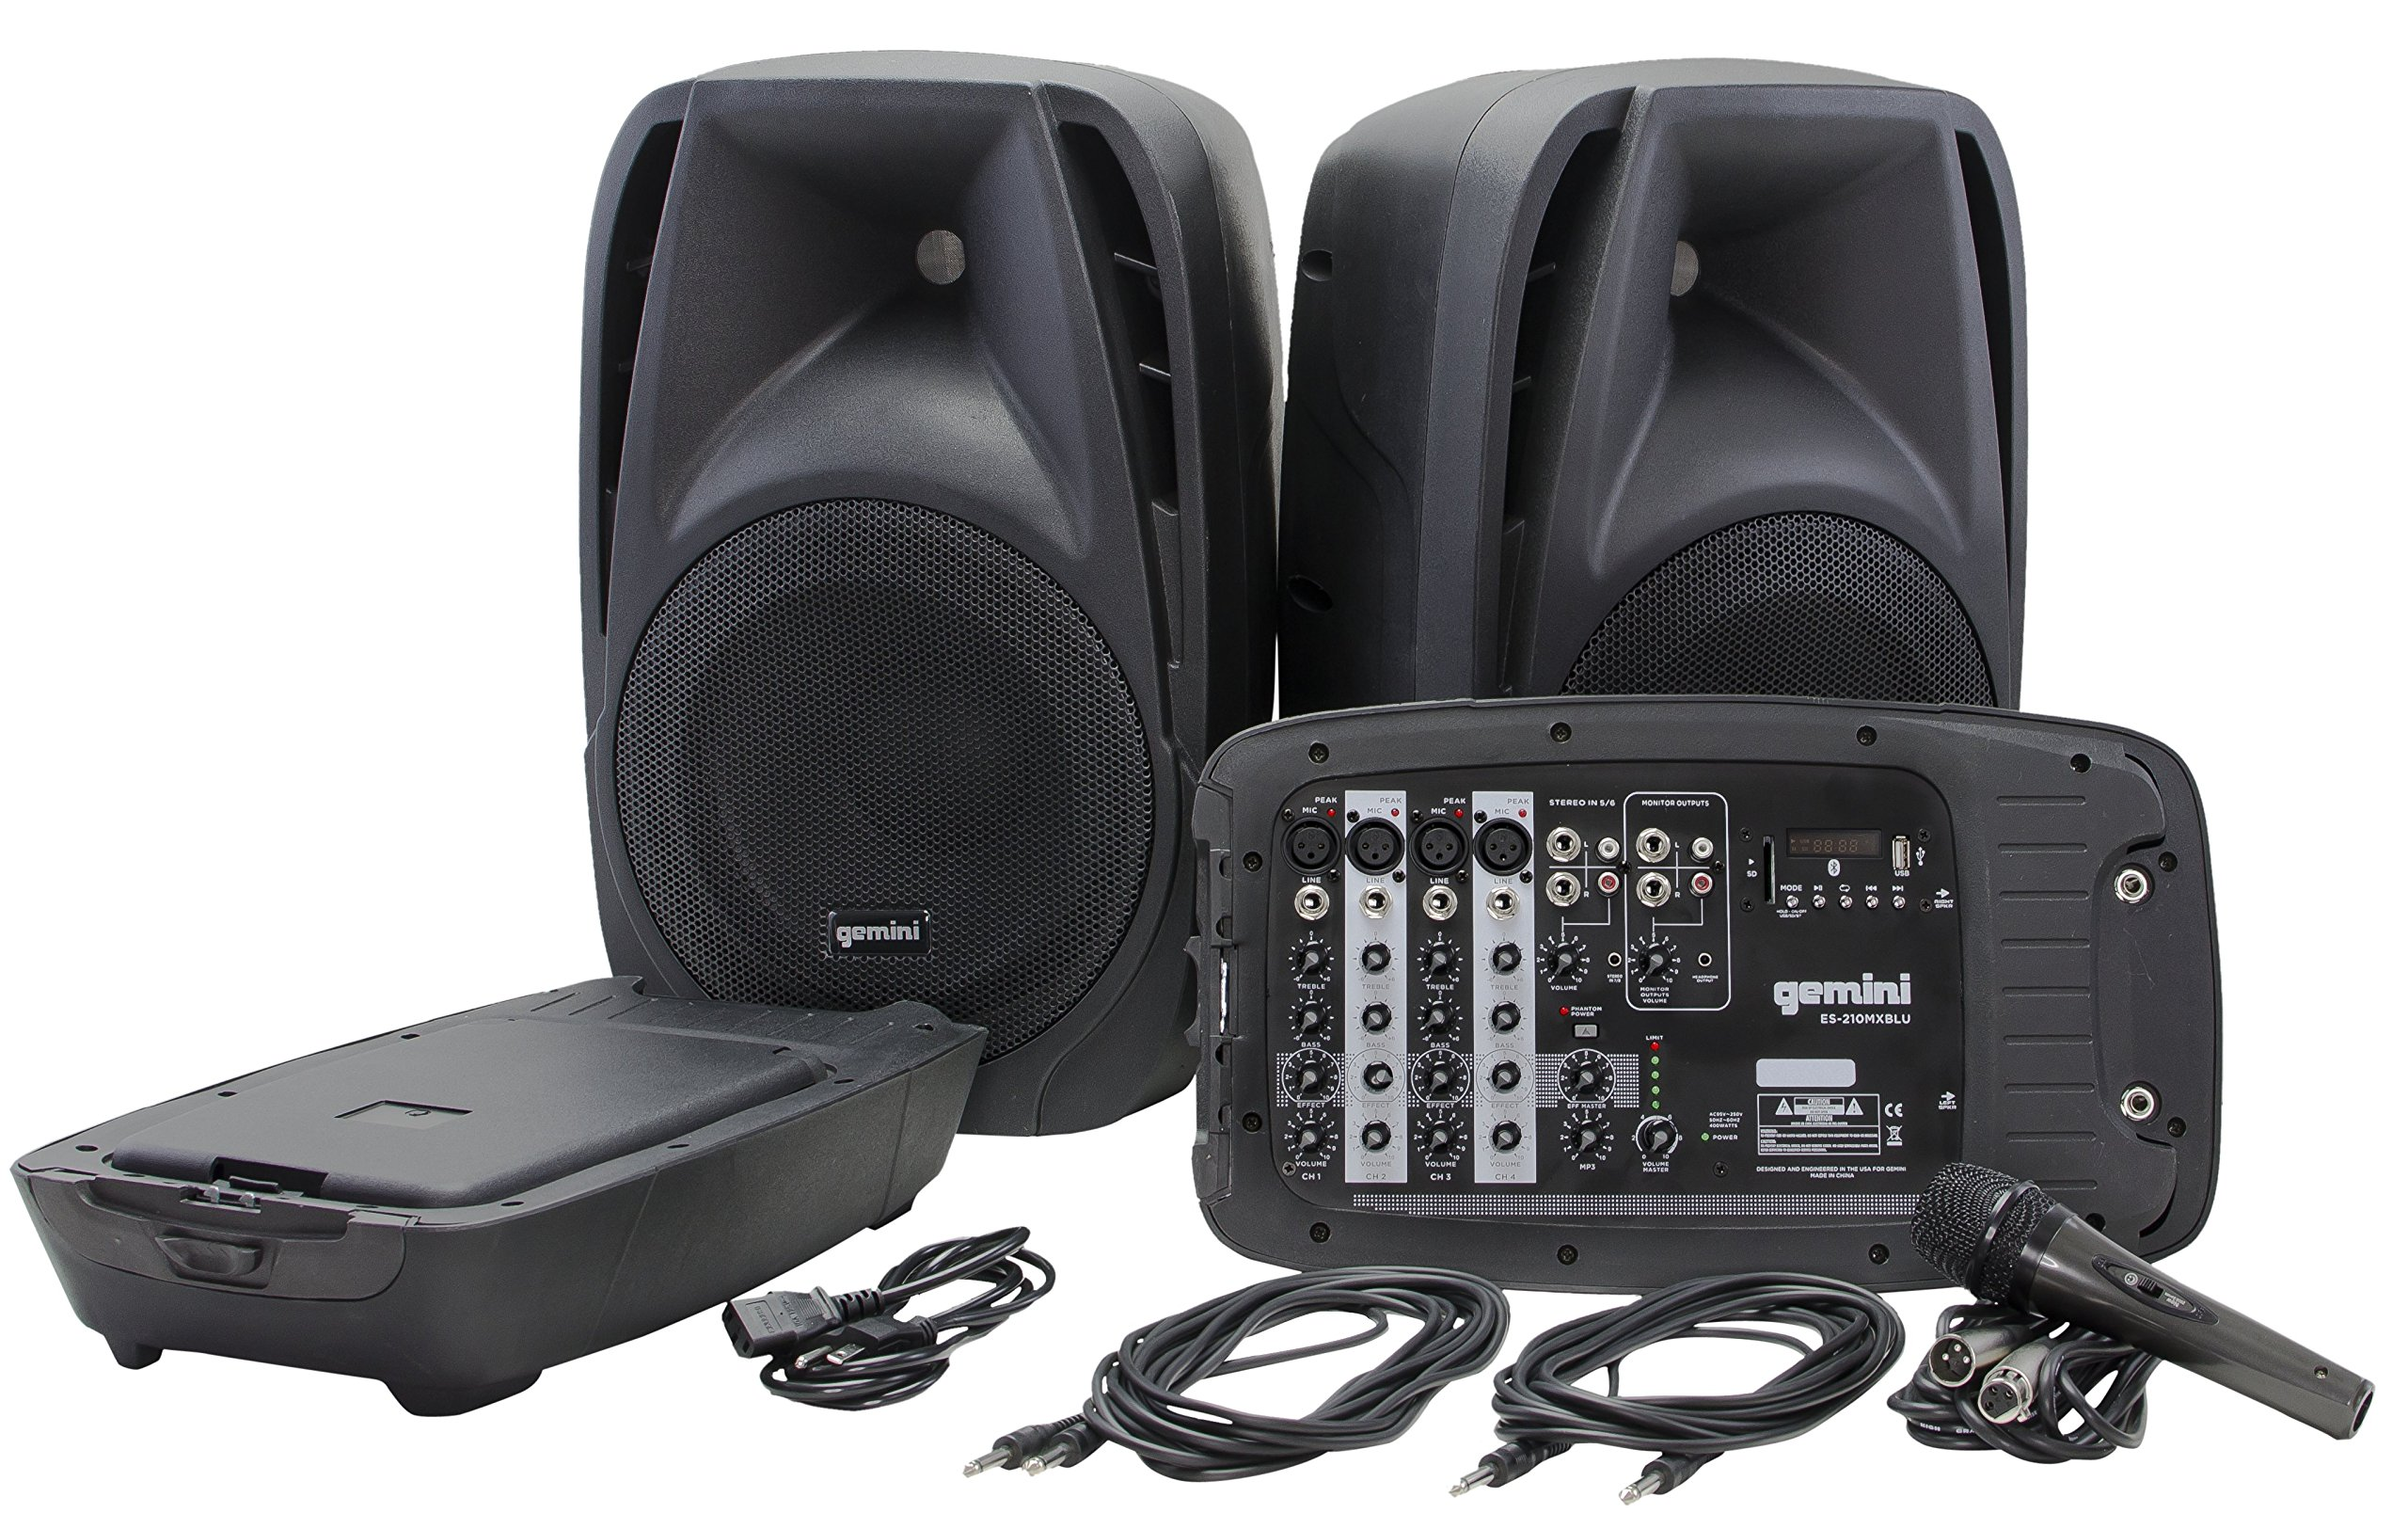 Gemini ES Series ES-210MXBLU Professional Audio Portable PA System with Two 10'' Passive Speakers and Microphone Included, 8 Channel Mixer, 4 Line/Mic Inputs by Gemini (Image #6)